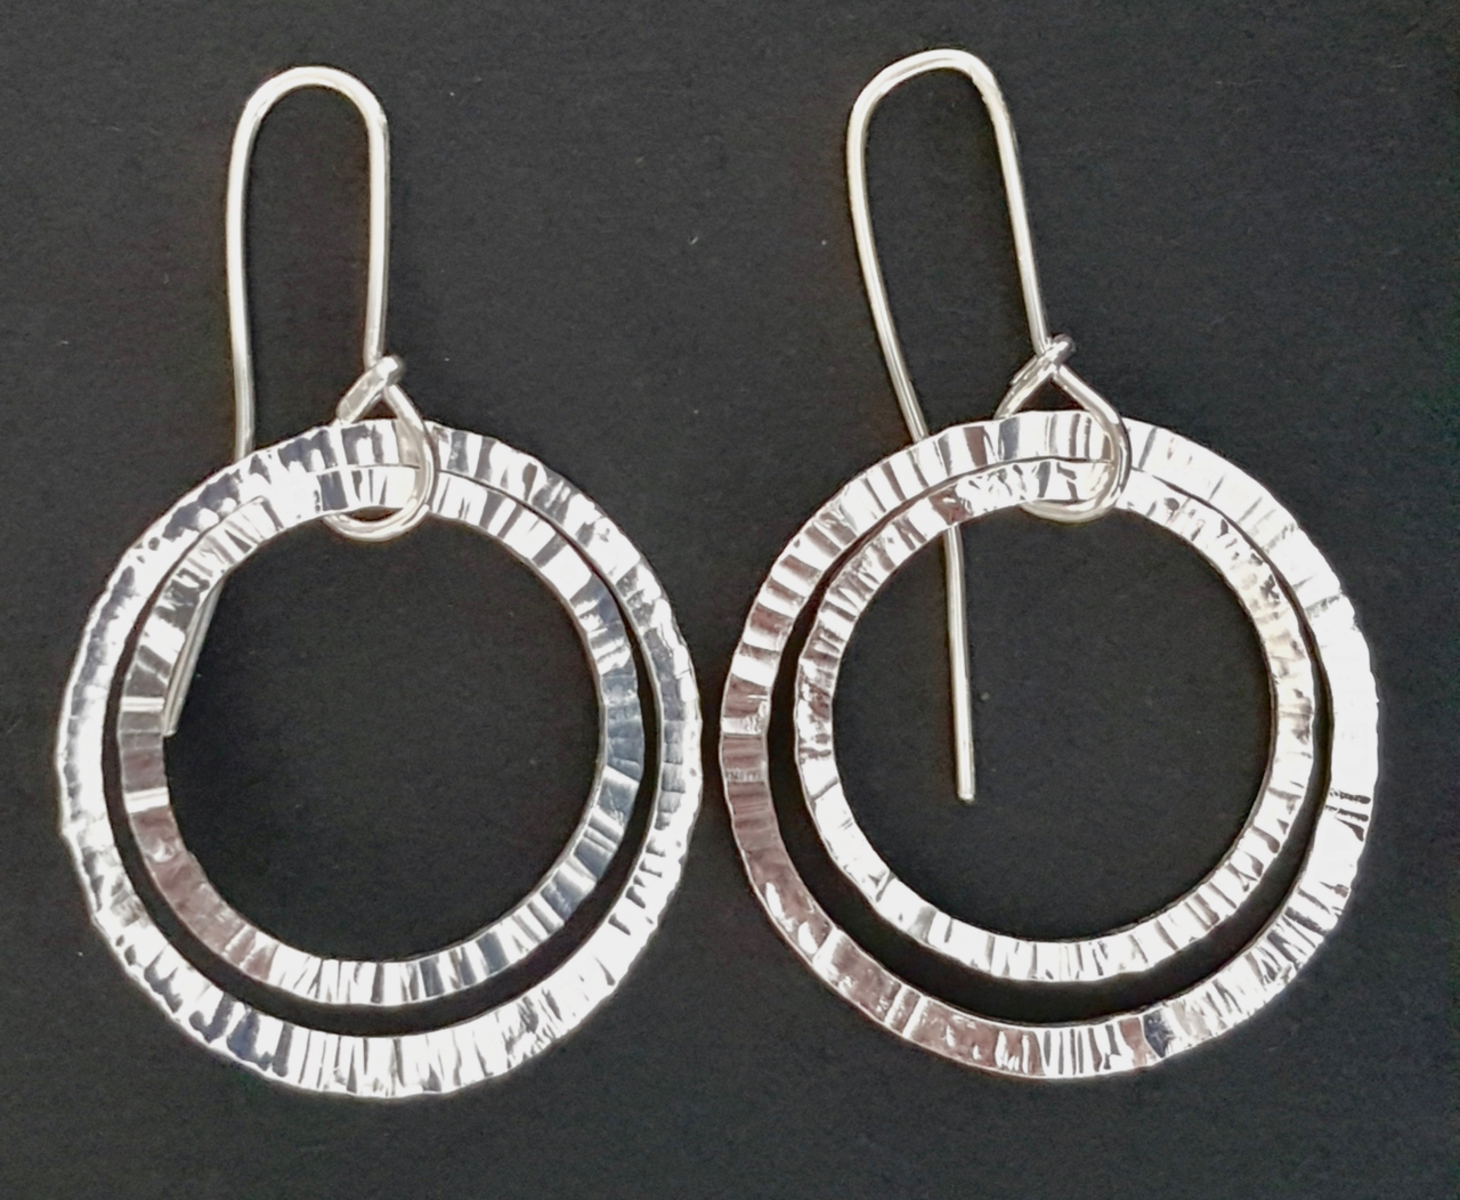 Forged double loop earrings (L)